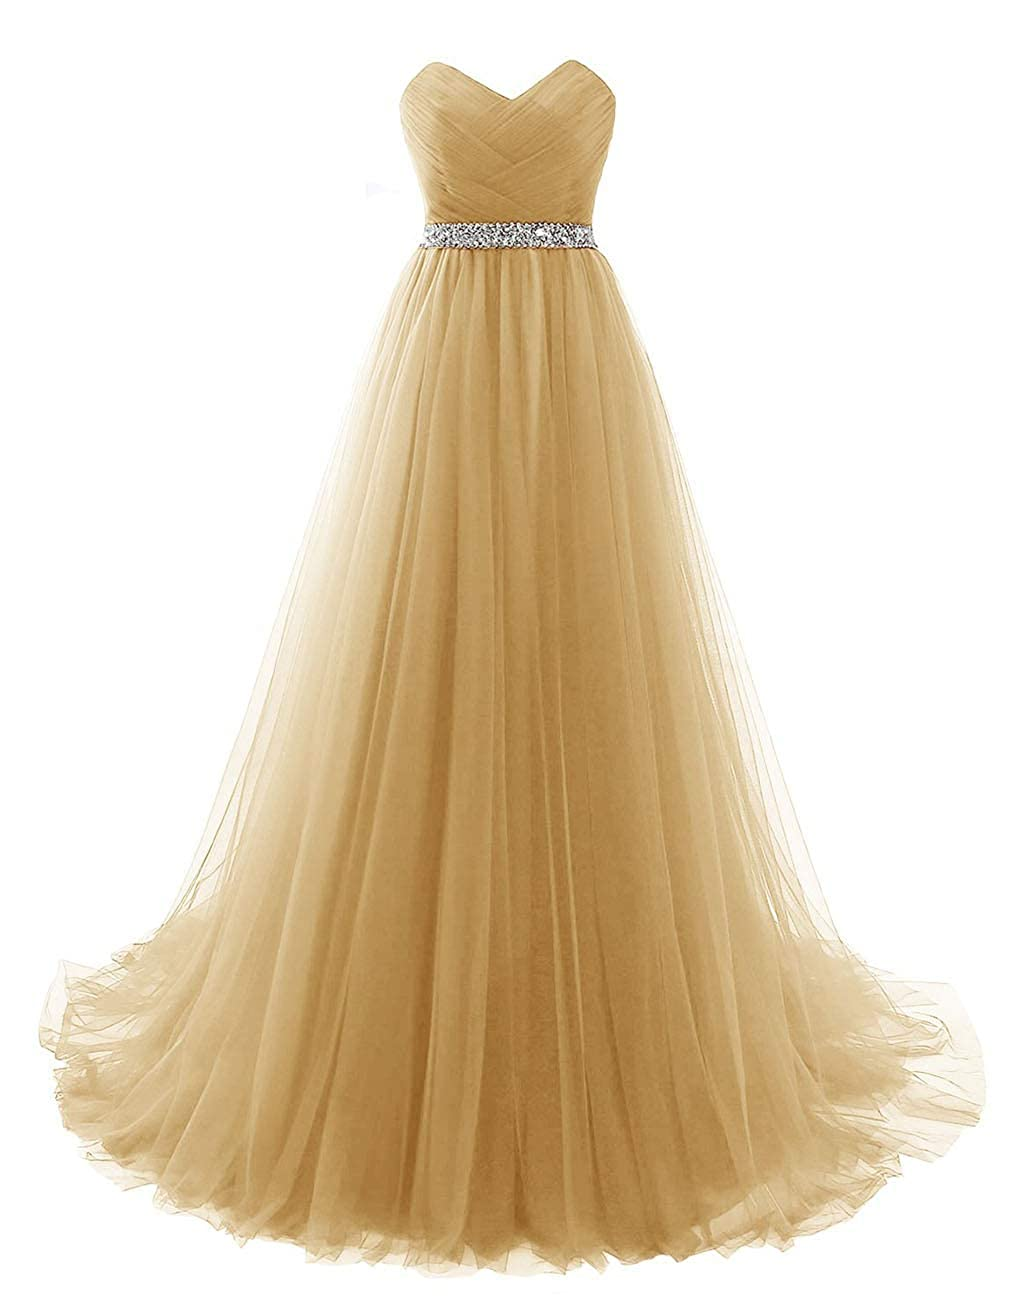 Champagne Vantexi Women's Sweetheart Beaded Belt Tulle Evening Prom Dresses